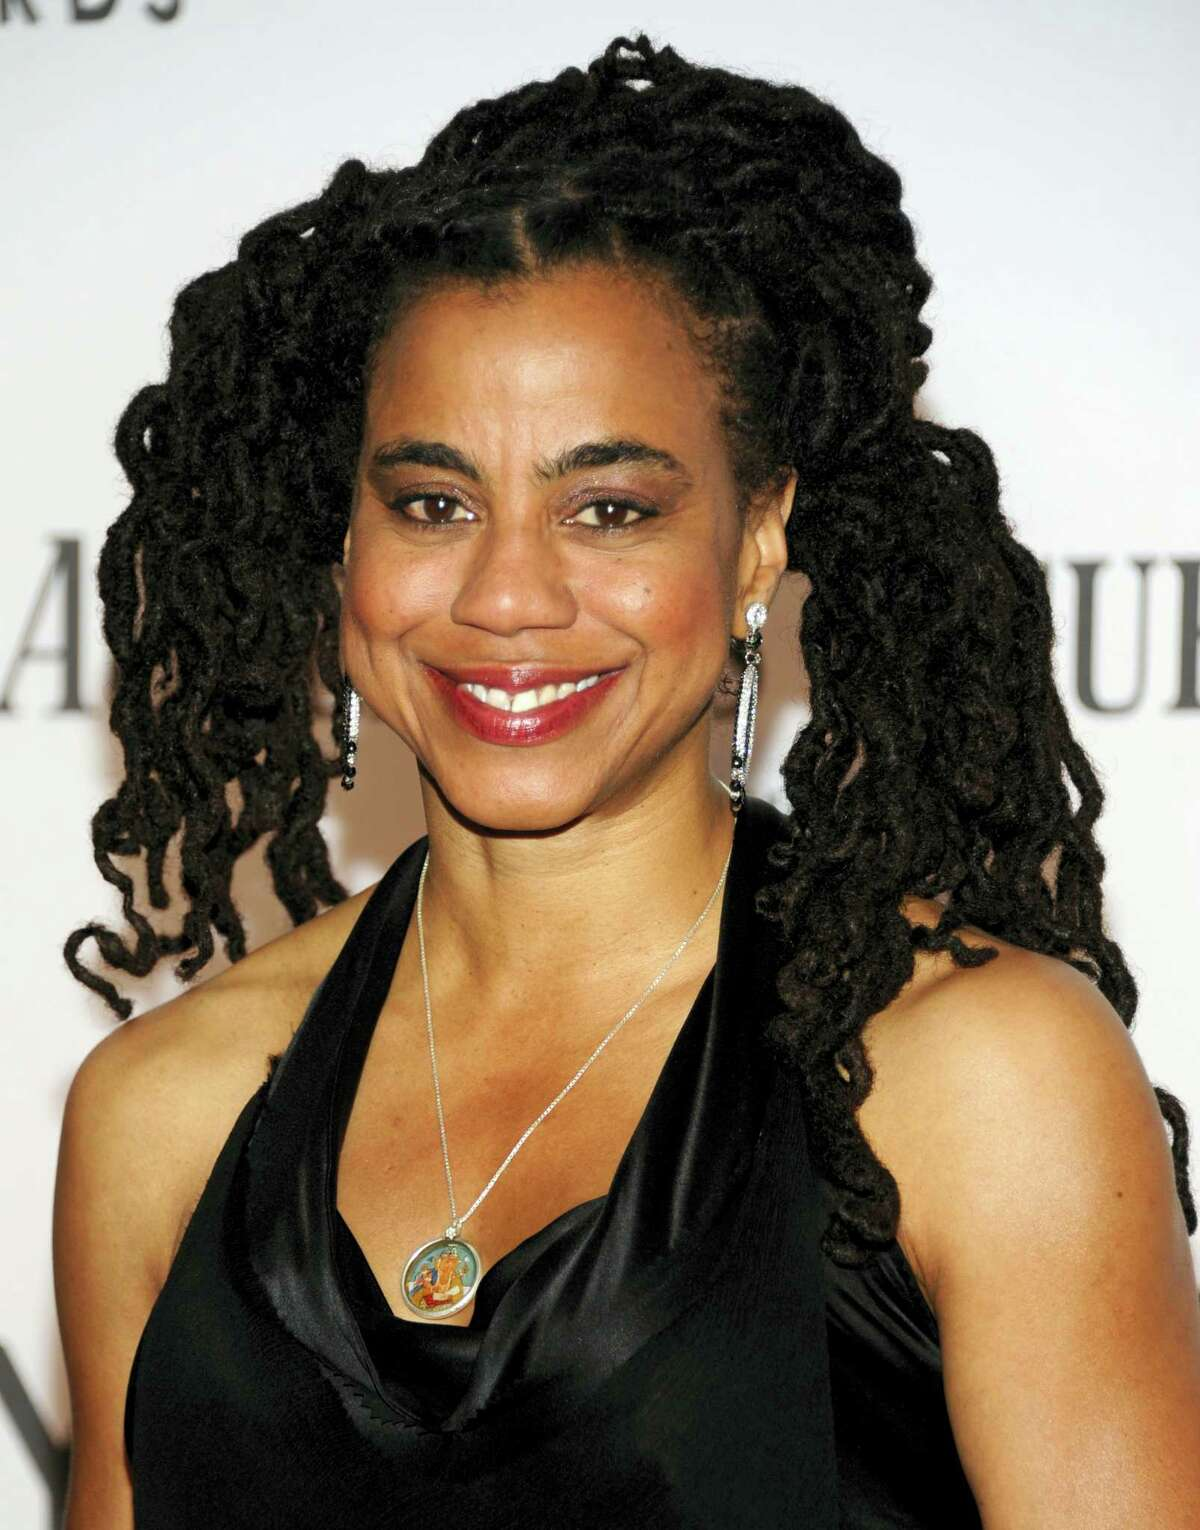 """In a June 10, 2012 photo, playwright and screenwriter Suzan-Lori Parks arrives at the 66th Annual Tony Awards, in New York. Parks, best known for her Pulitzer Prize-winning play """"Topdog/Underdog,"""" received a PEN award for """"Master American Dramatist,"""" PEN announced Feb. 22, 2017."""